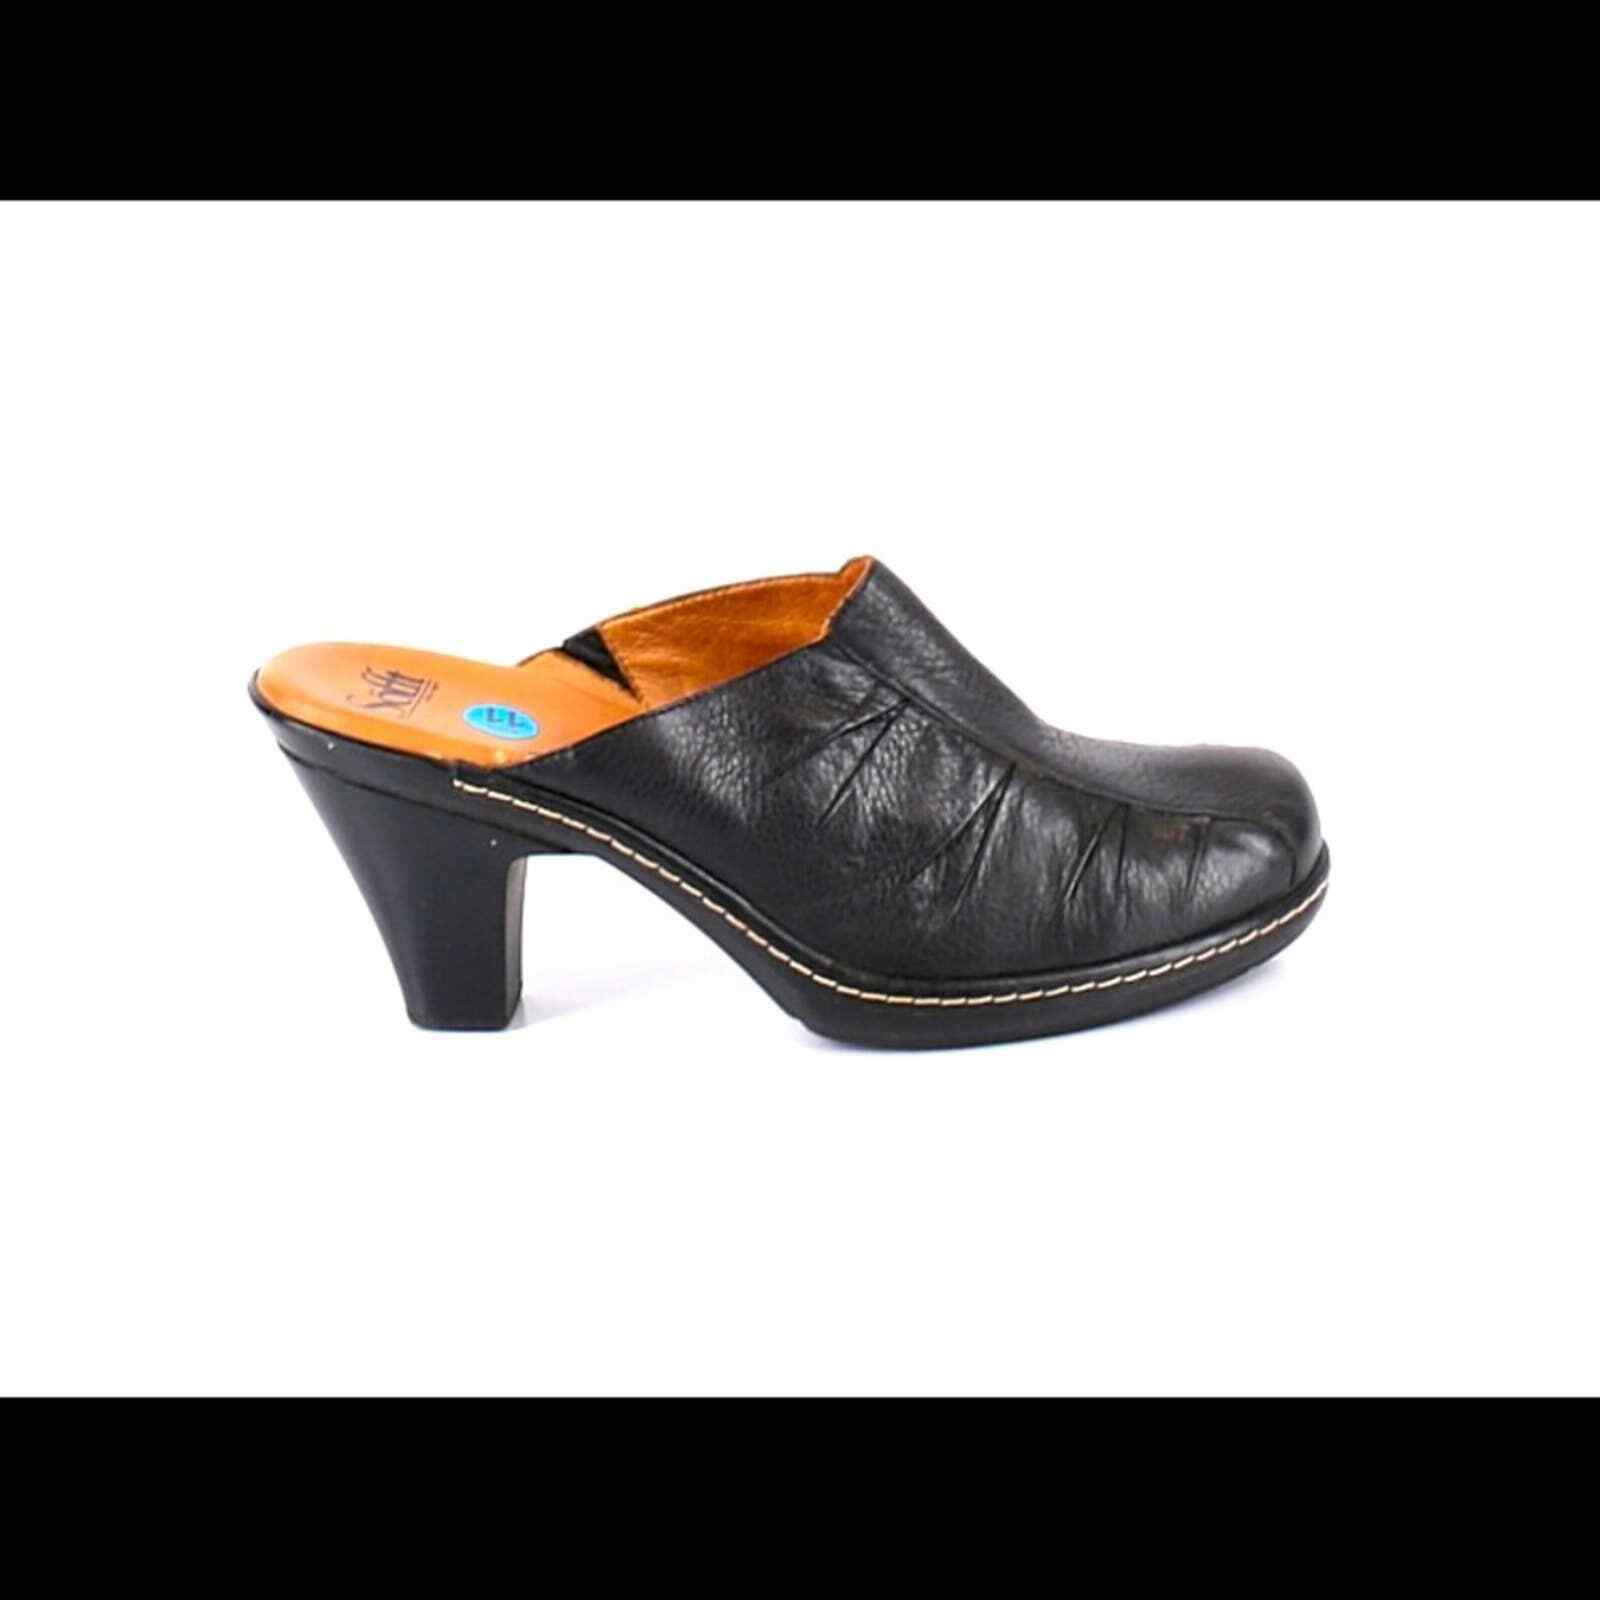 Sofft Leather Ruched Comfort Mule Clog Size 11